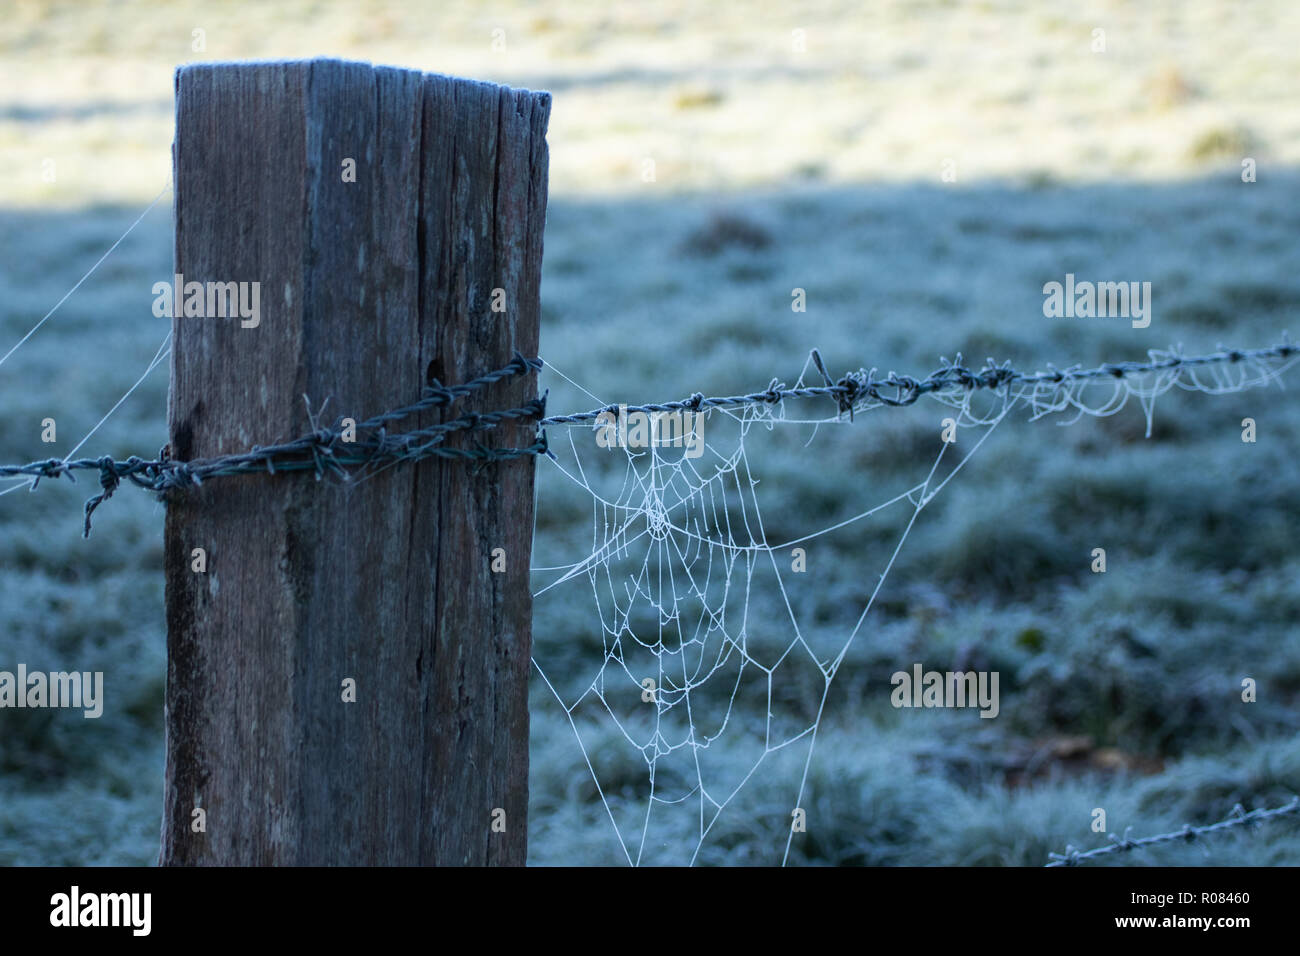 Barbed wire Fence post with frosty cobweb - Stock Image